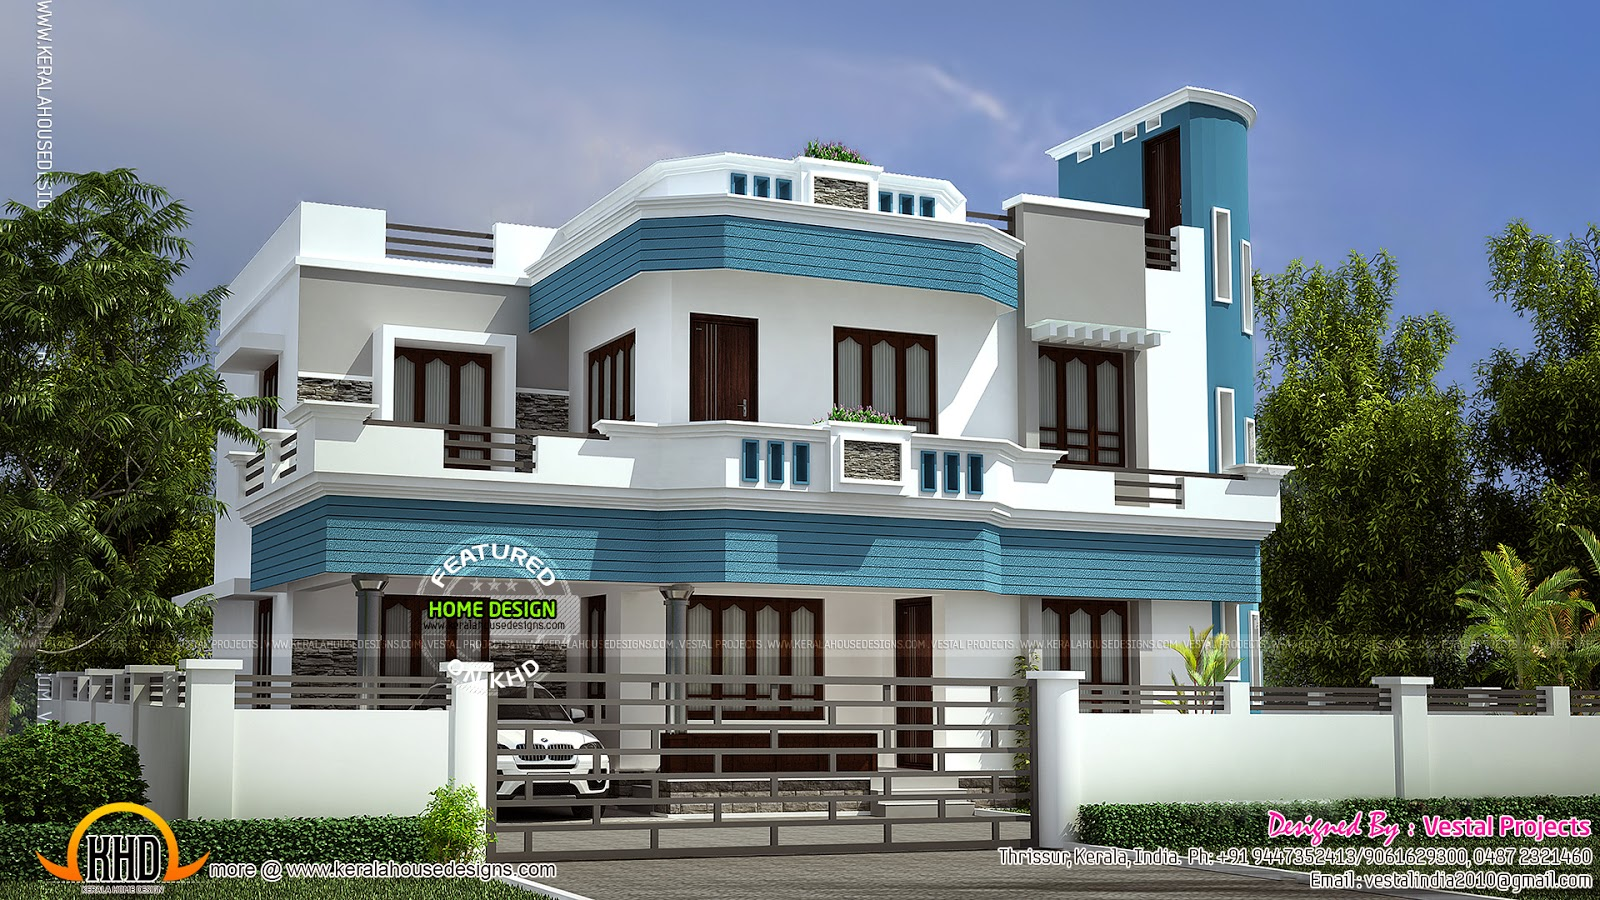 Awesome house by vestal projects kerala home design and for Www homedesign com